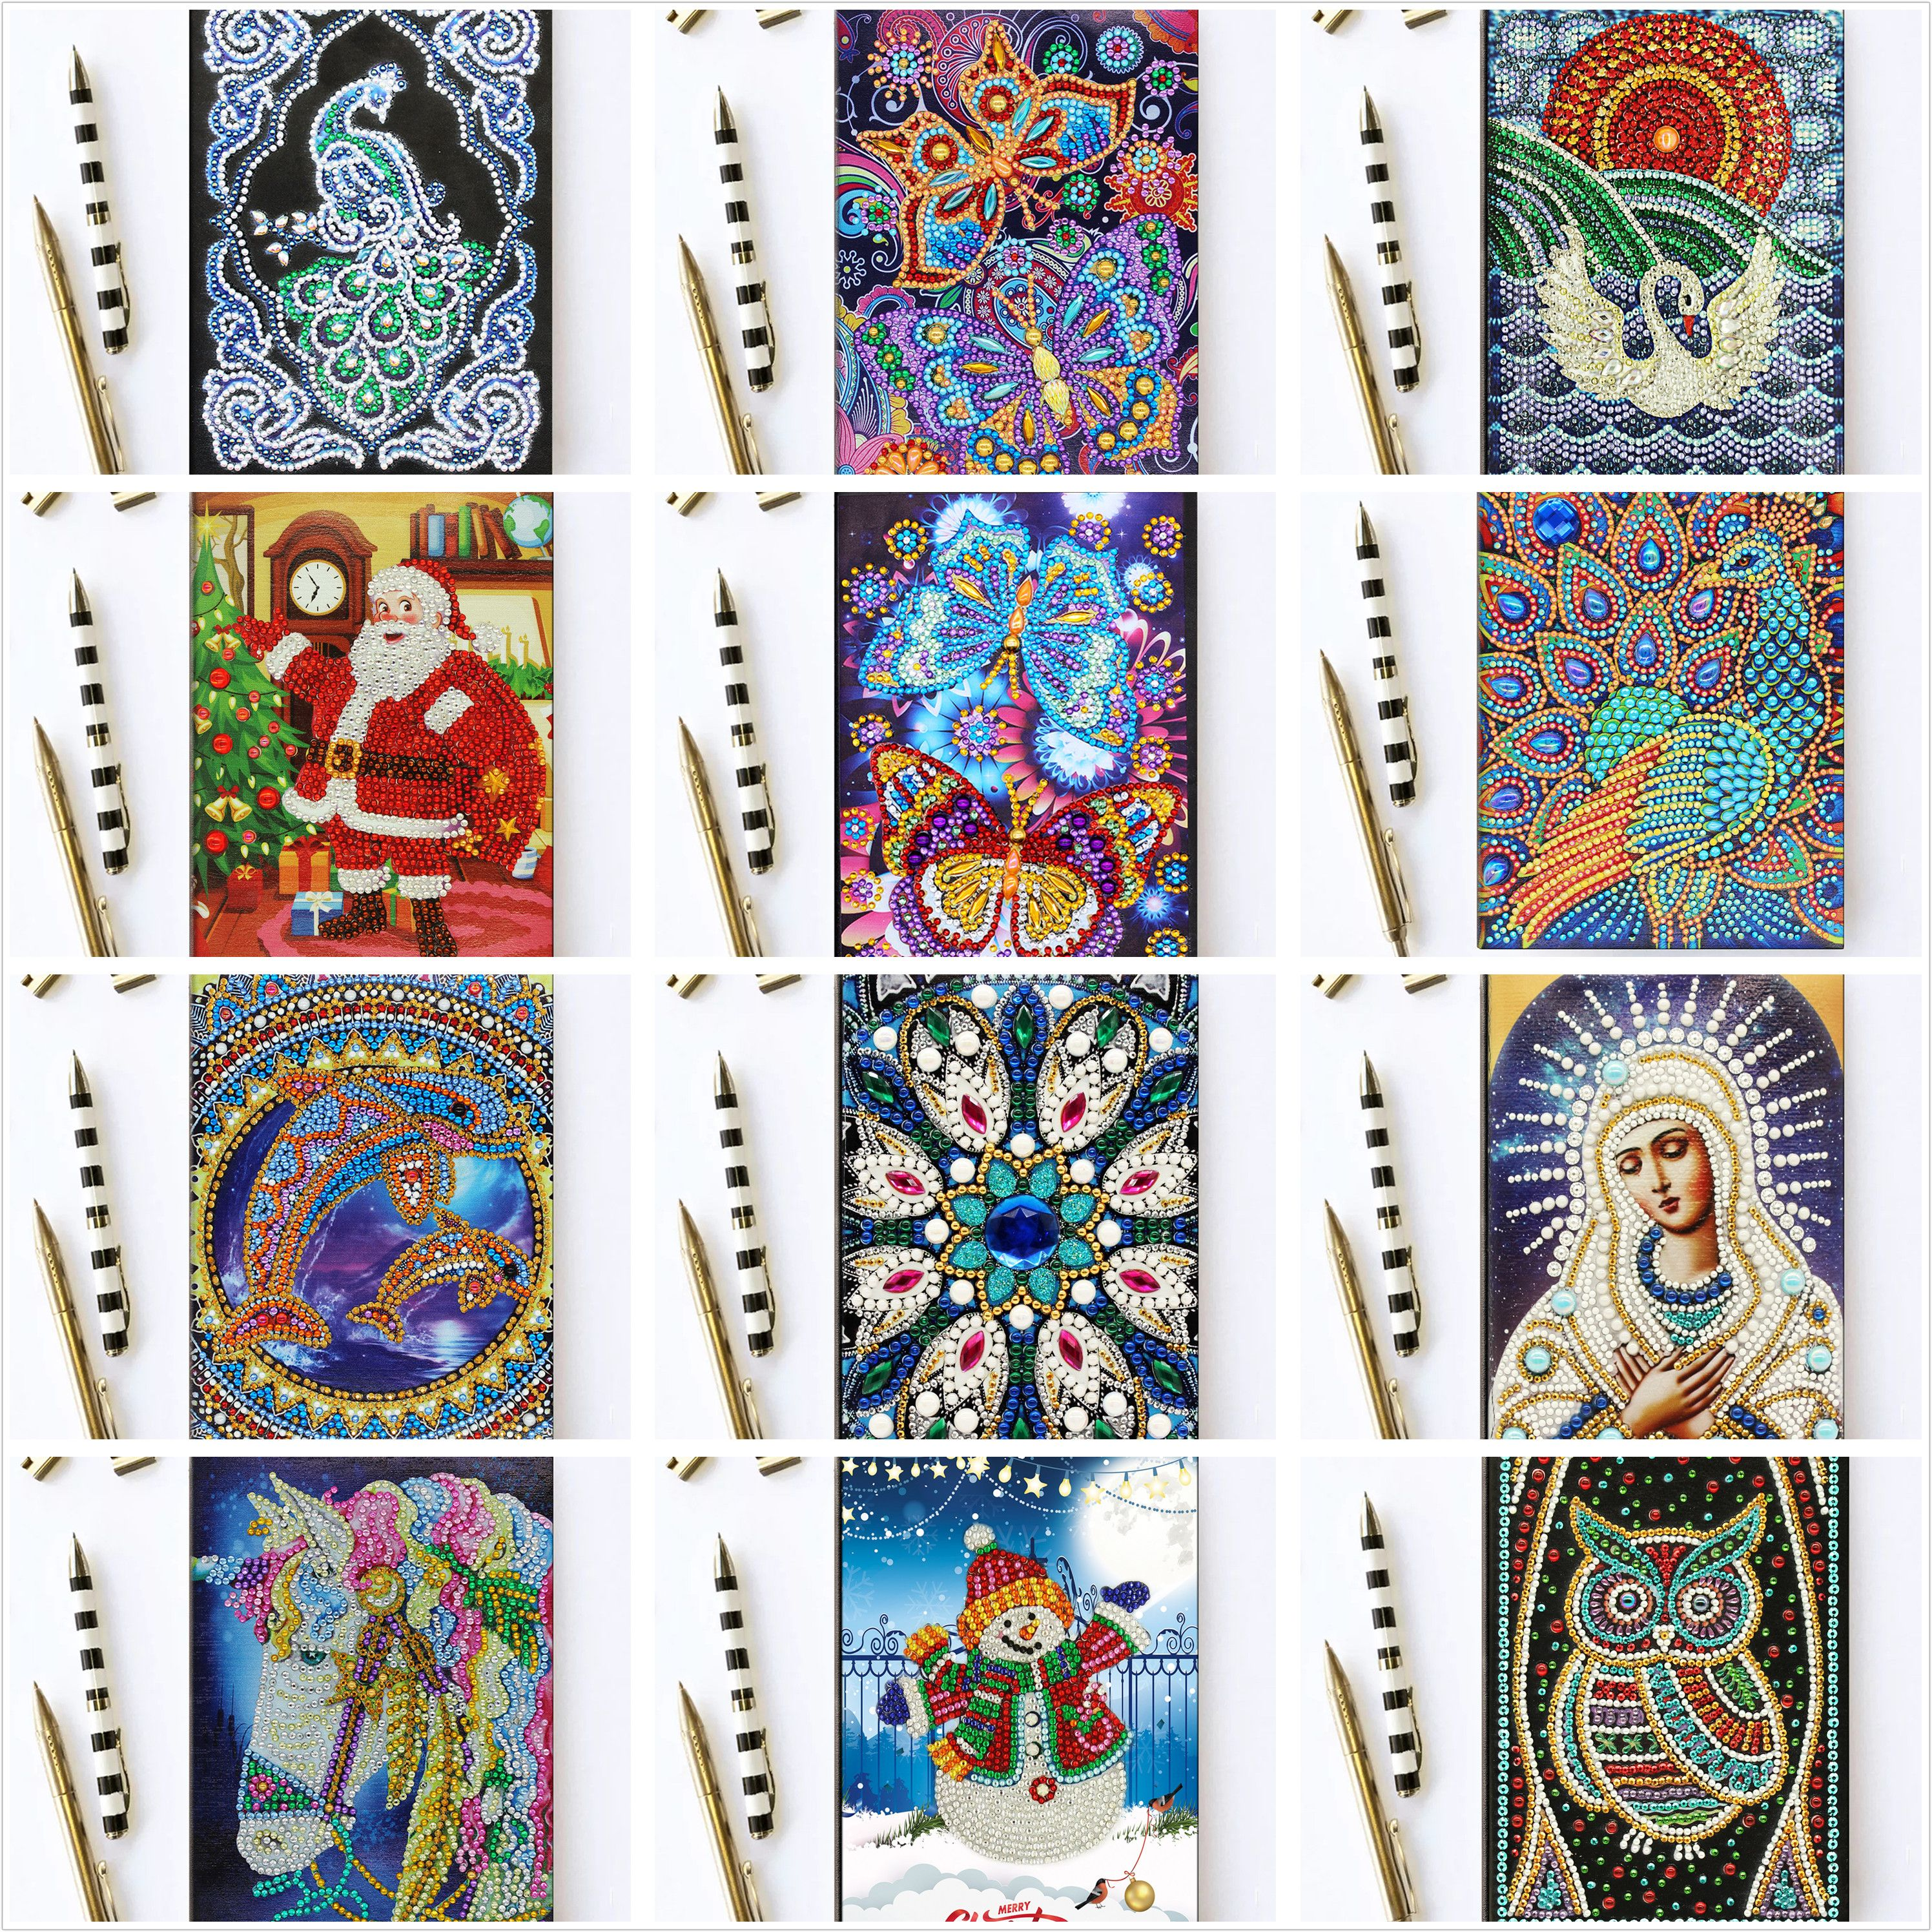 Shirliben Diy Art Diamond Painting Notebook Diary Full Round Diamond Mosaic Embroidery A5 64 Pages Owl Peacock Mandala Butterfly